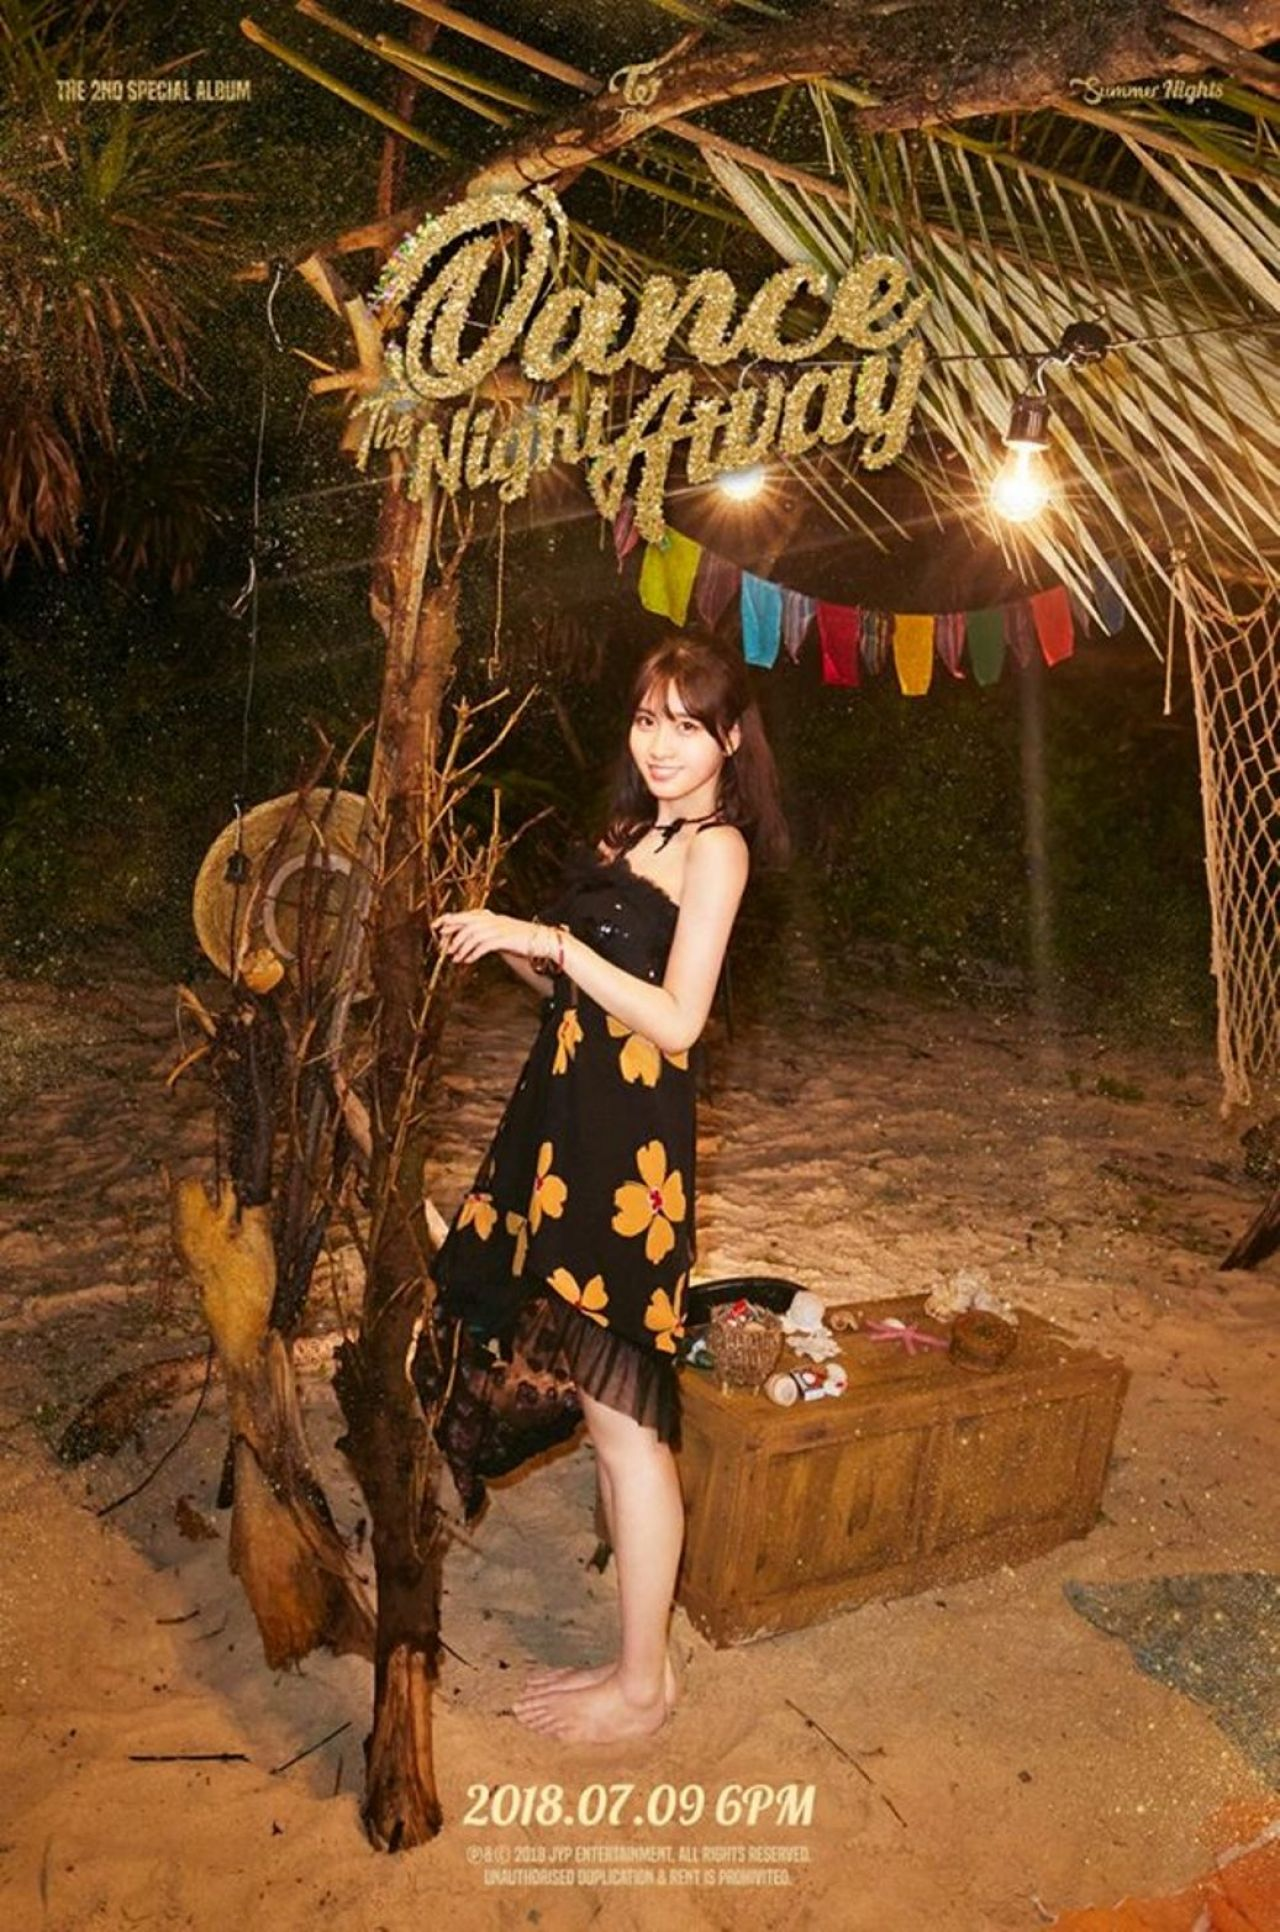 Red Dress Girl Wallpaper Twice Quot Summer Nights Quot 2nd Special Album Teaser Photos 2018